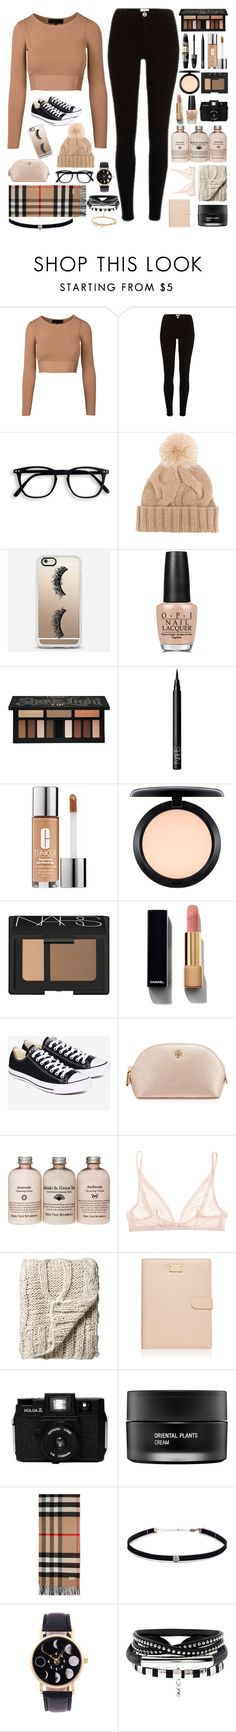 """""""❁// i don't go looking for trouble, trouble usually finds me"""" by a-perfect-messs ❤ liked on Polyvore featuring Loro Piana, Casetify, OPI, Max Factor, Kat Von D, NARS Cosmetics, Clinique, MAC Cosmetics, Chanel and Converse"""